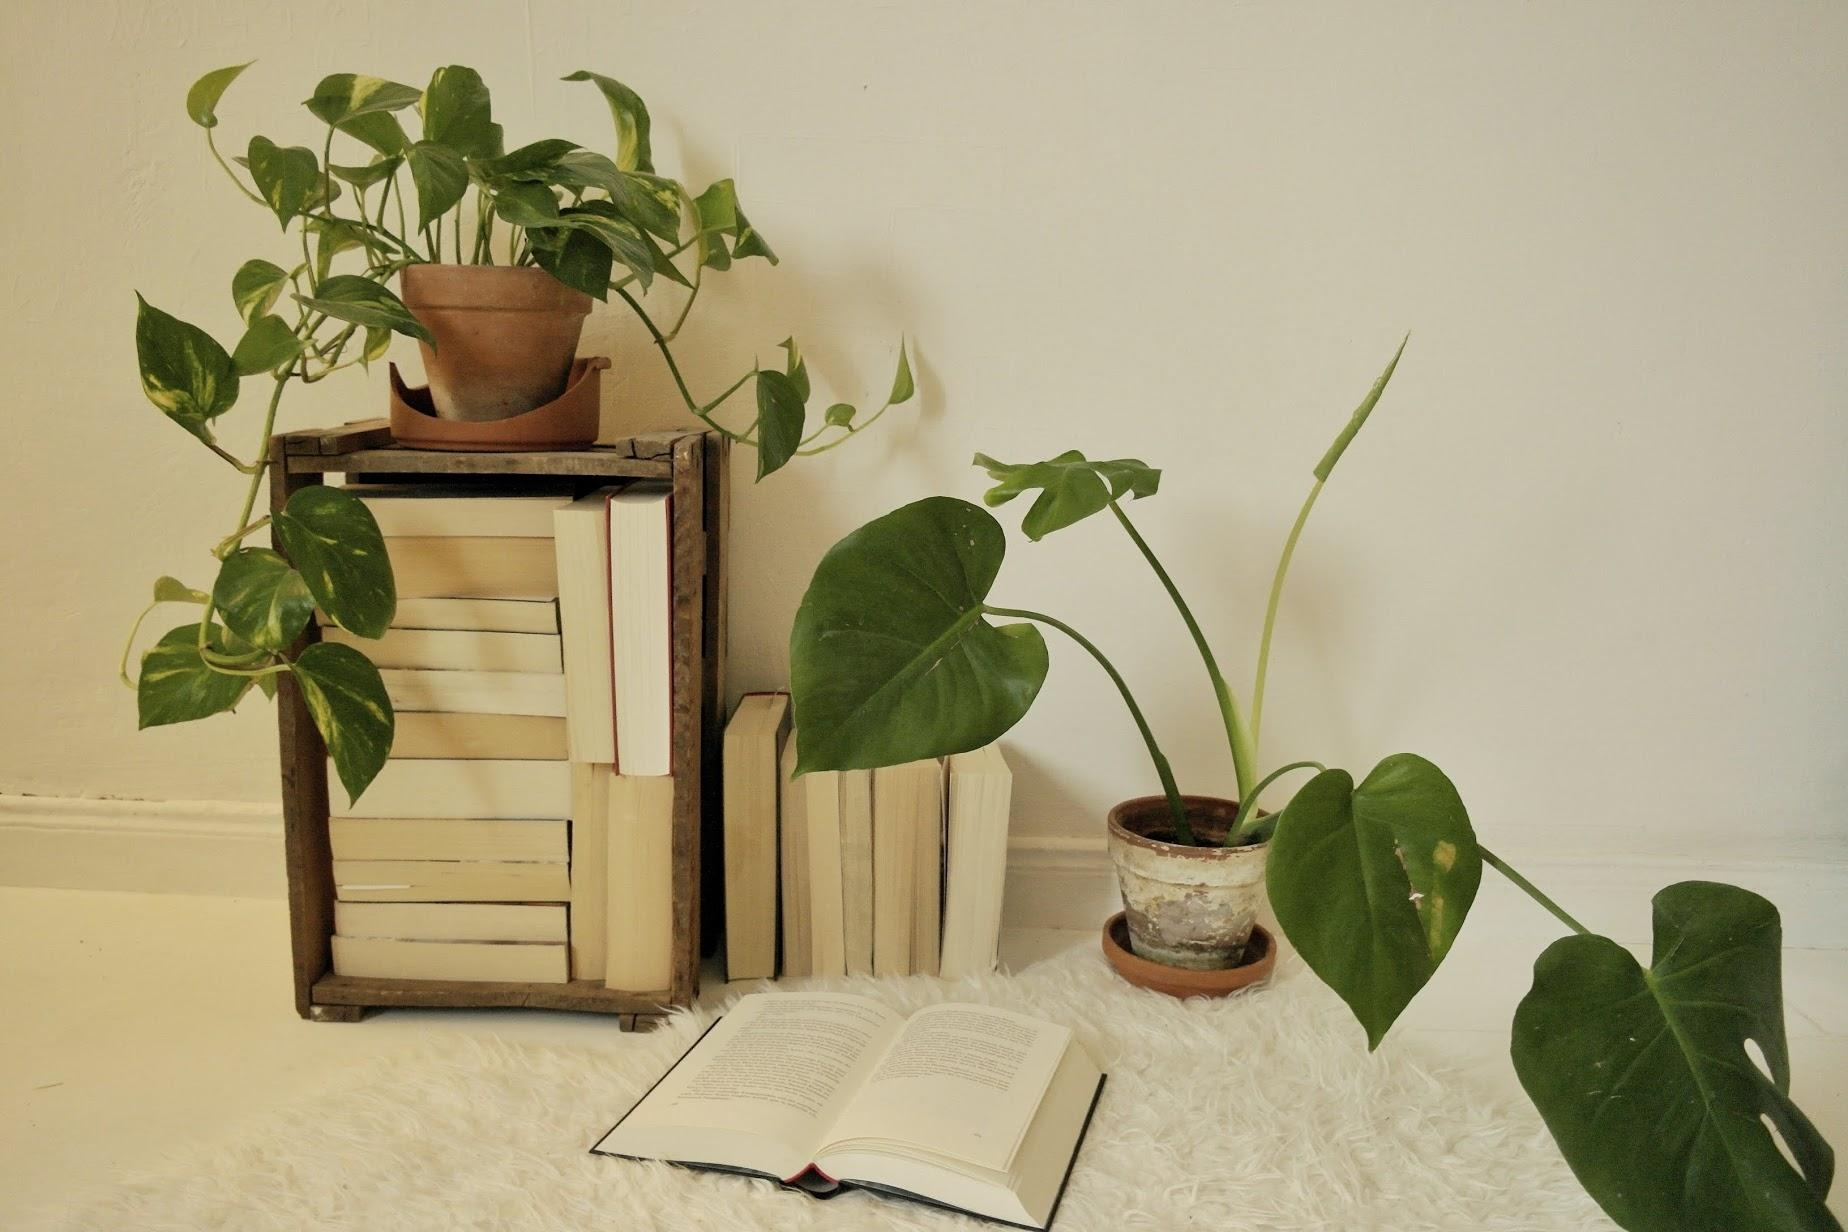 #books #plants #roomdecor #white #decor #room